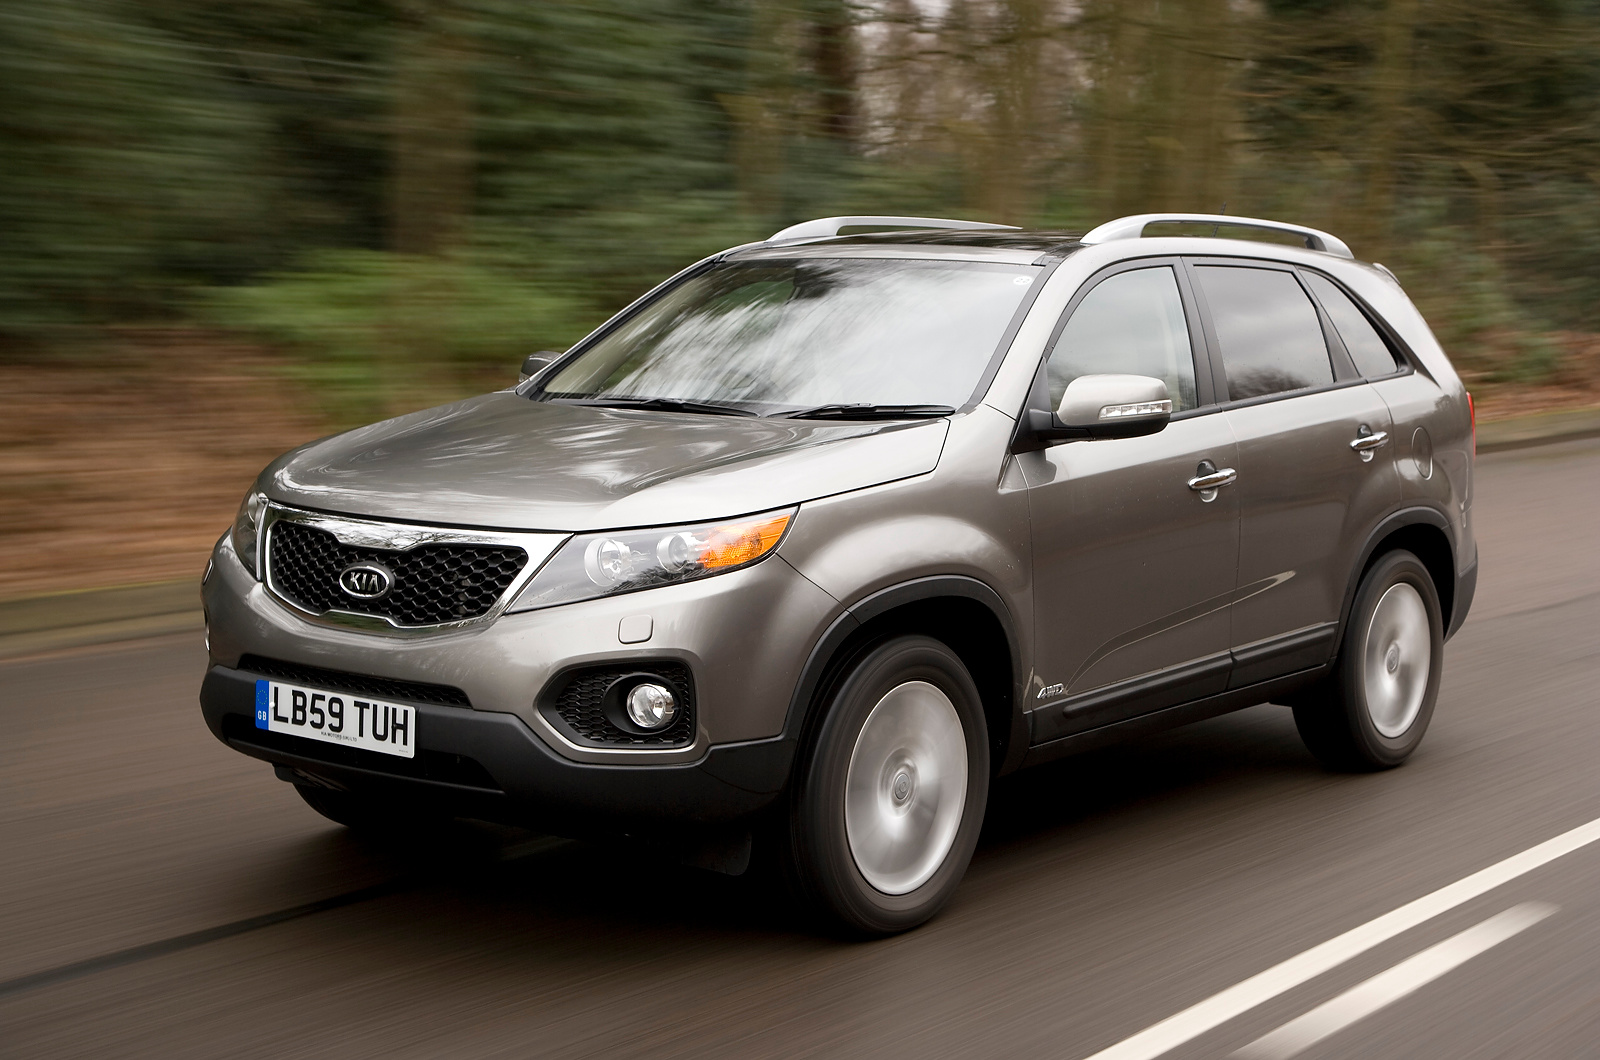 Kia Sorento 2010 2014 Review (2018) | Autocar